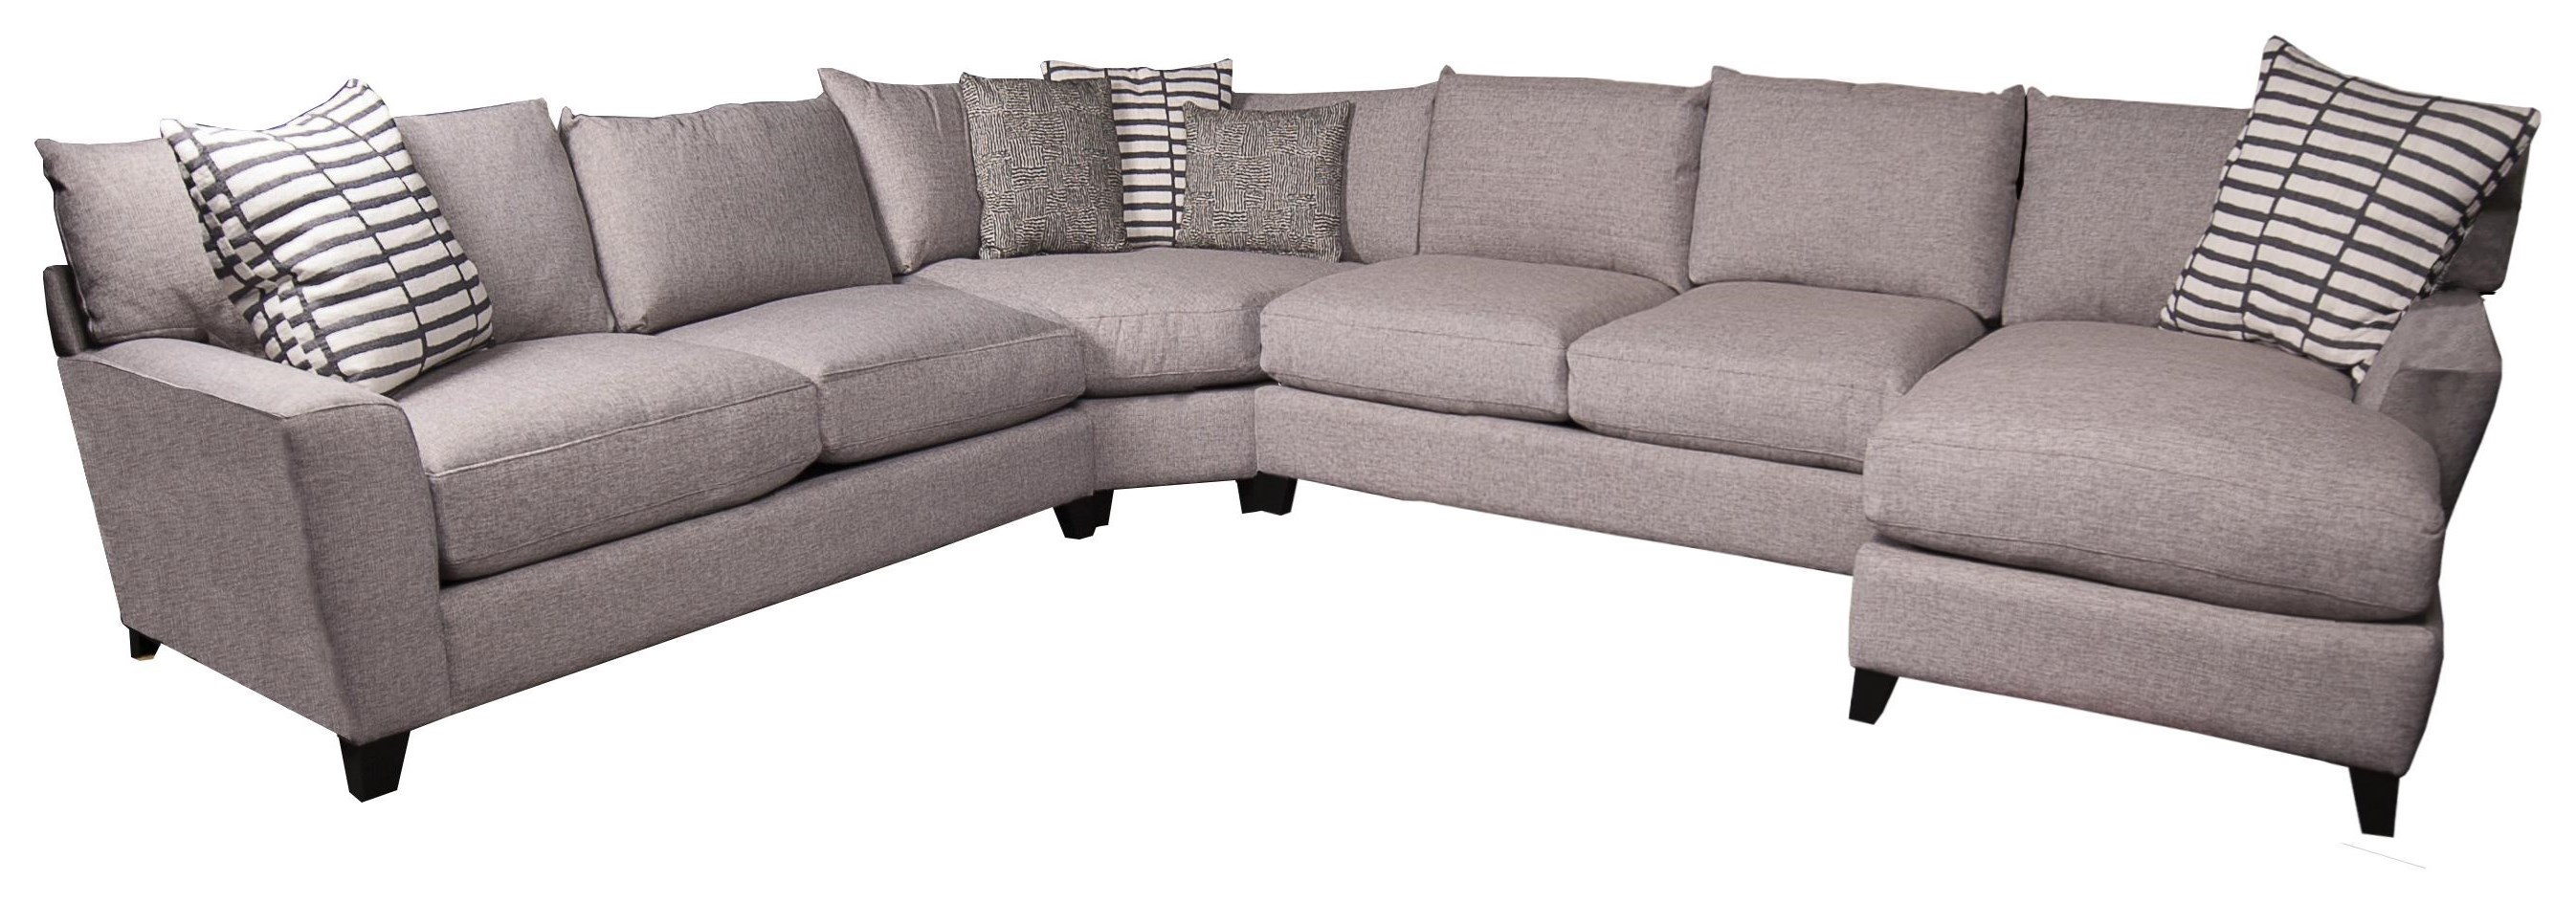 Harlow Harlow Sectional Sofa by Jonathan Louis at Morris Home